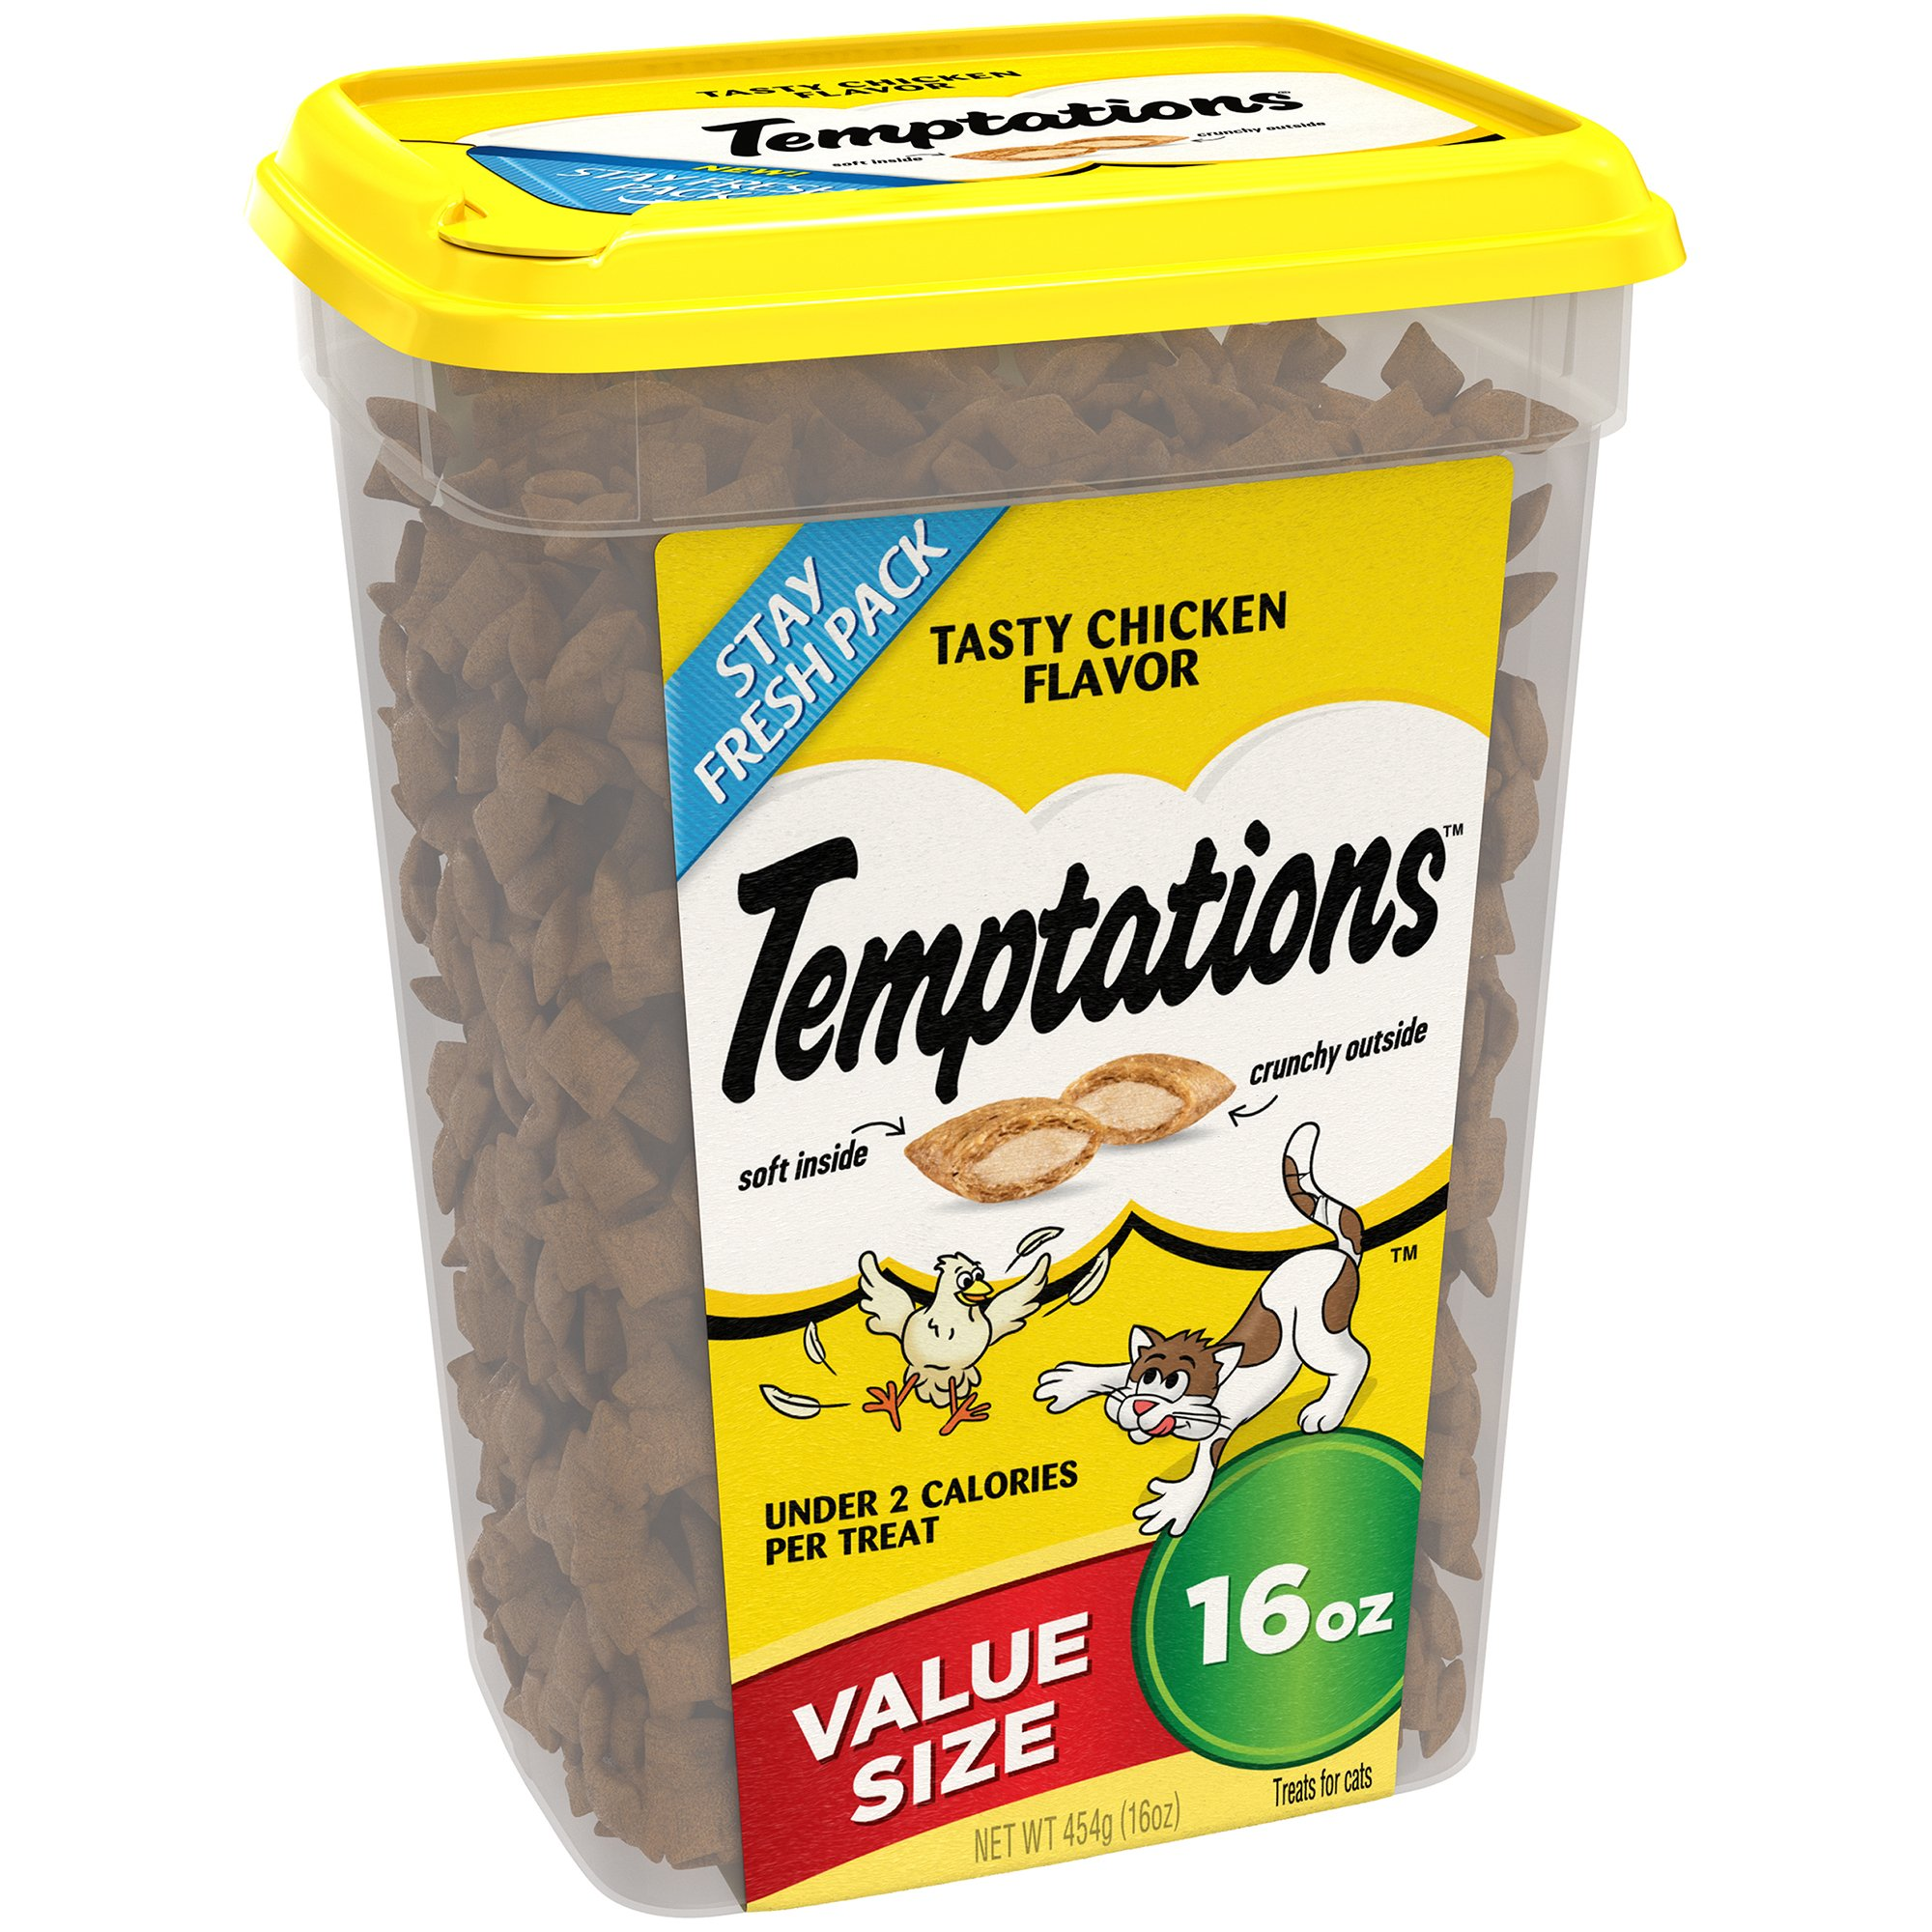 Temptations Classic Treats For Cats Tasty Chicken Flavor 16 Ounces (Pack Of 4) by Temptations (Image #1)